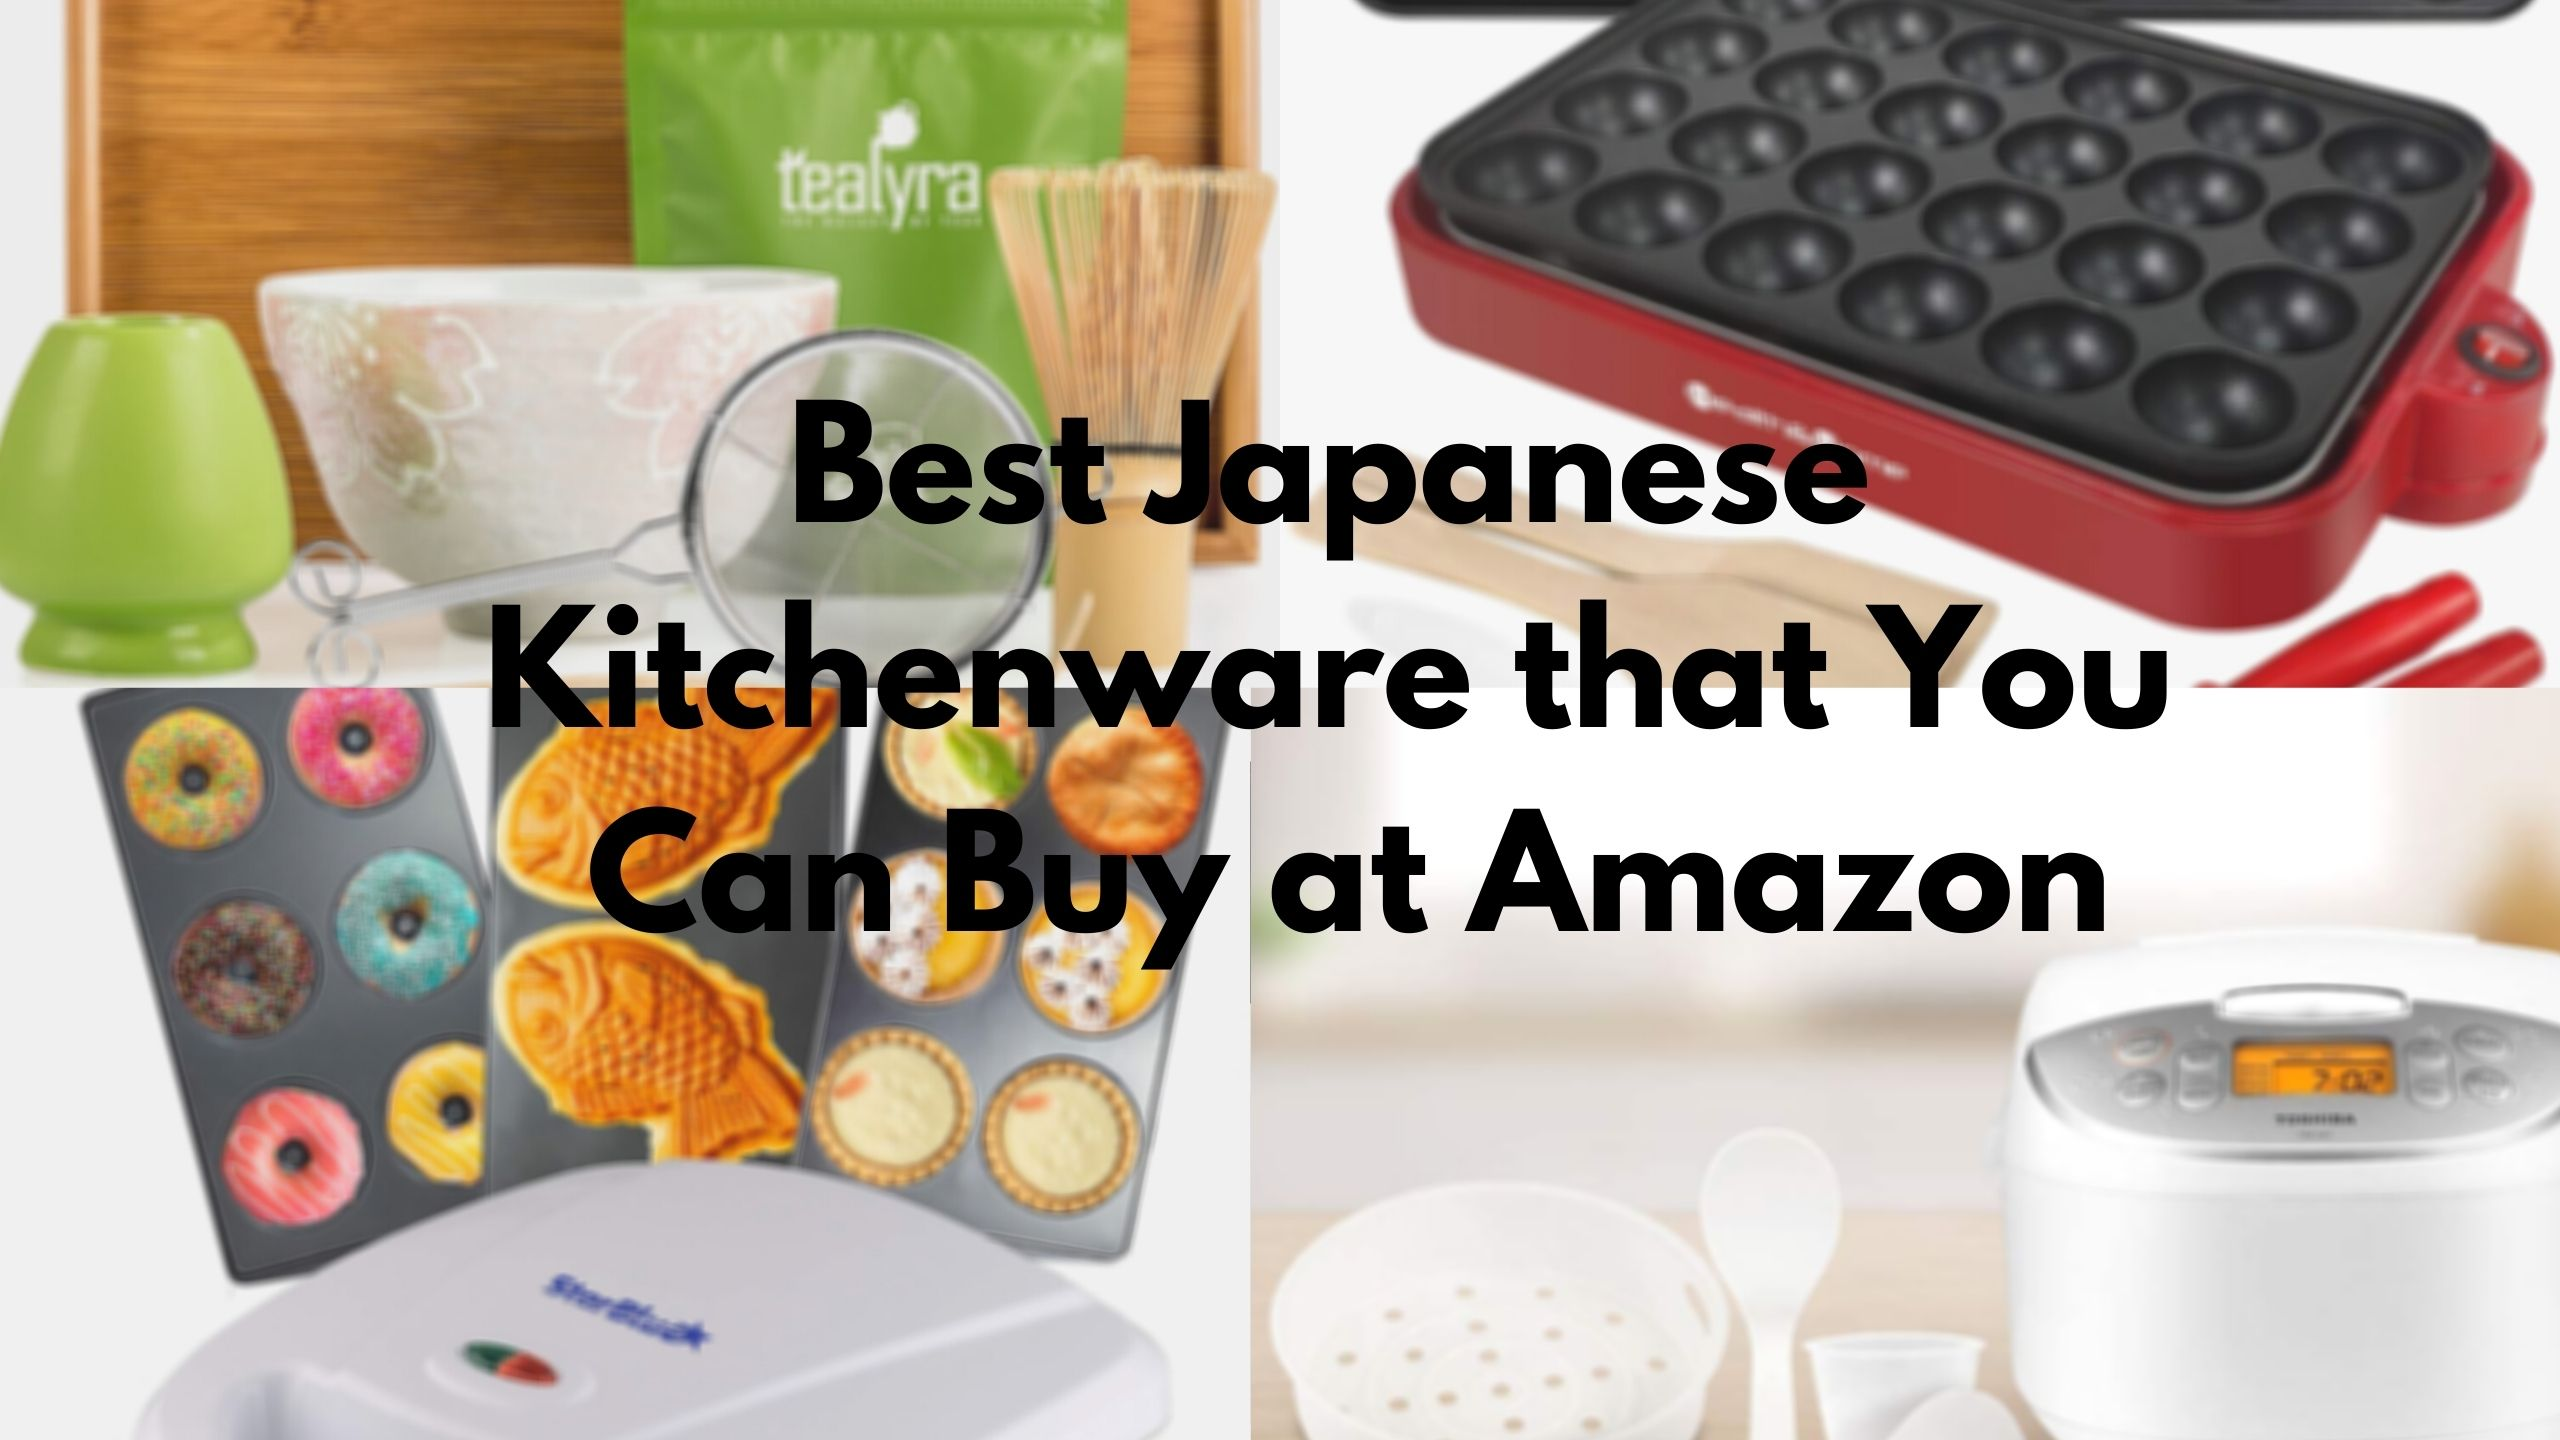 Best Japanese Kitchenware that You Can Buy at Amazon